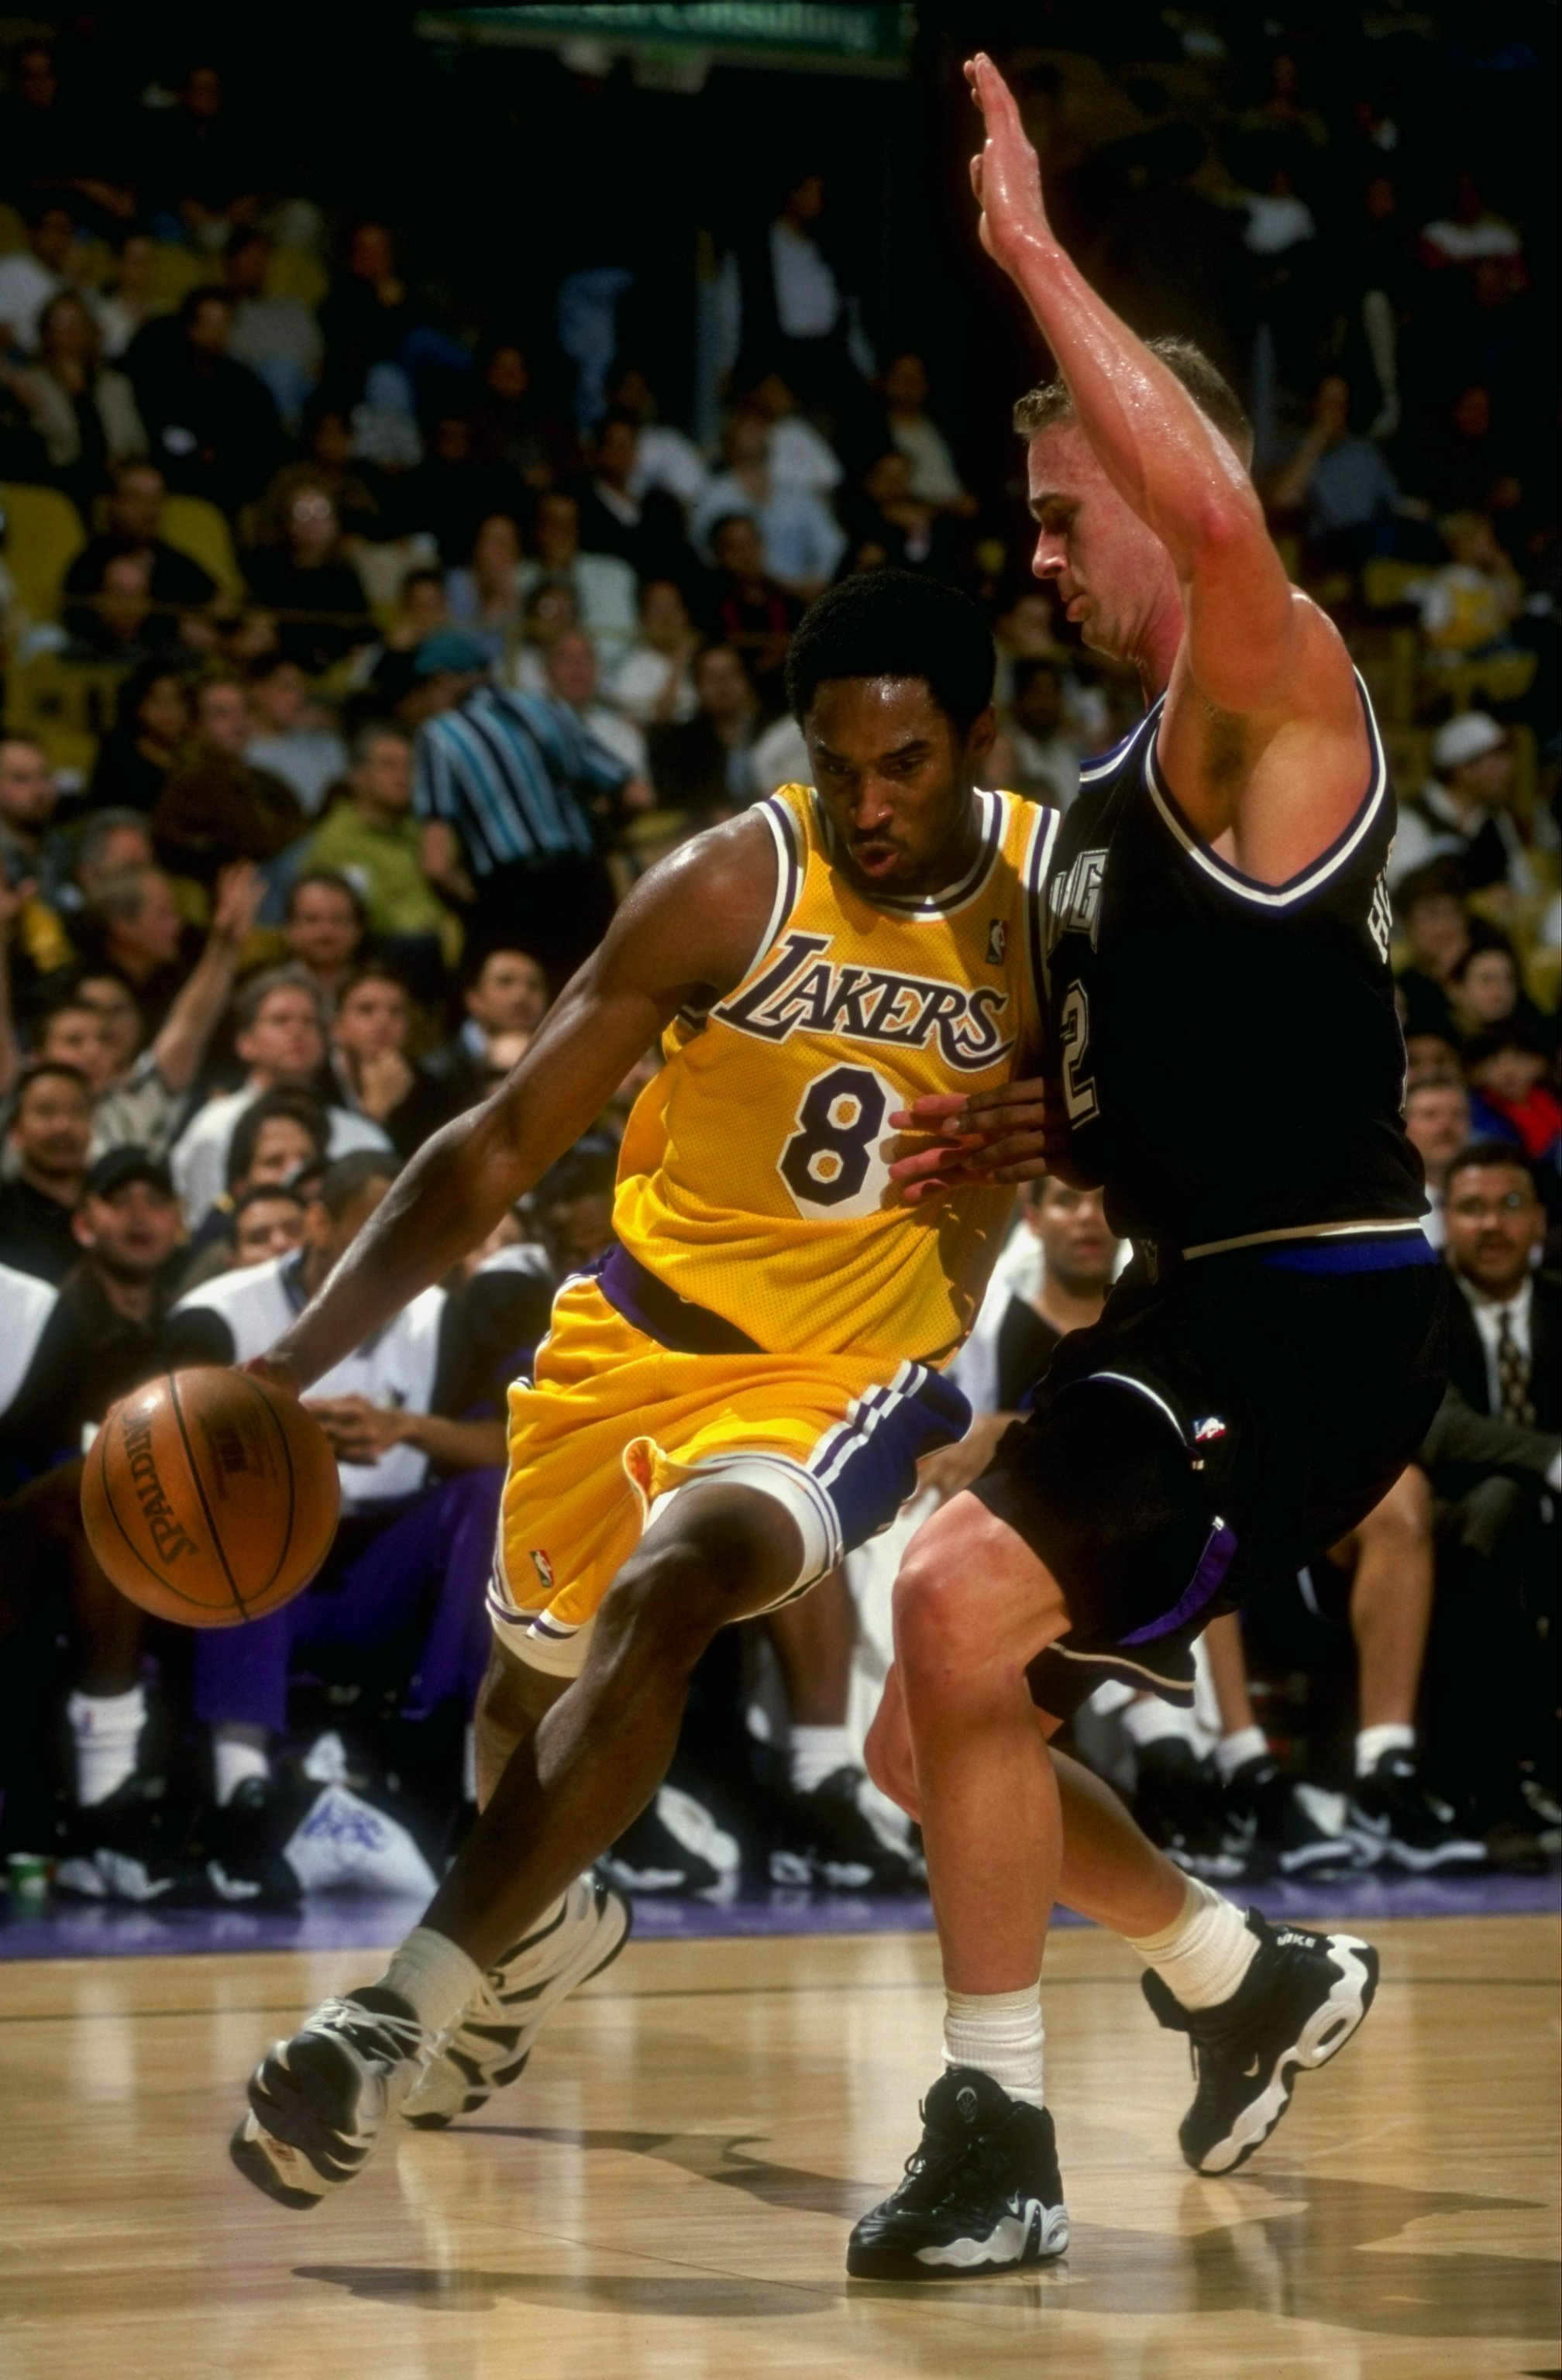 25 Mar 1998:  Guard Kobe Bryant of the Los Angeles Lakers in action against forward Mark Hendrickson of the Sacramento Kings during a game at the Great Western Forum in Inglewood, California.  The Lakers defeated the Kings 114-91. Mandatory Credit: Vincen